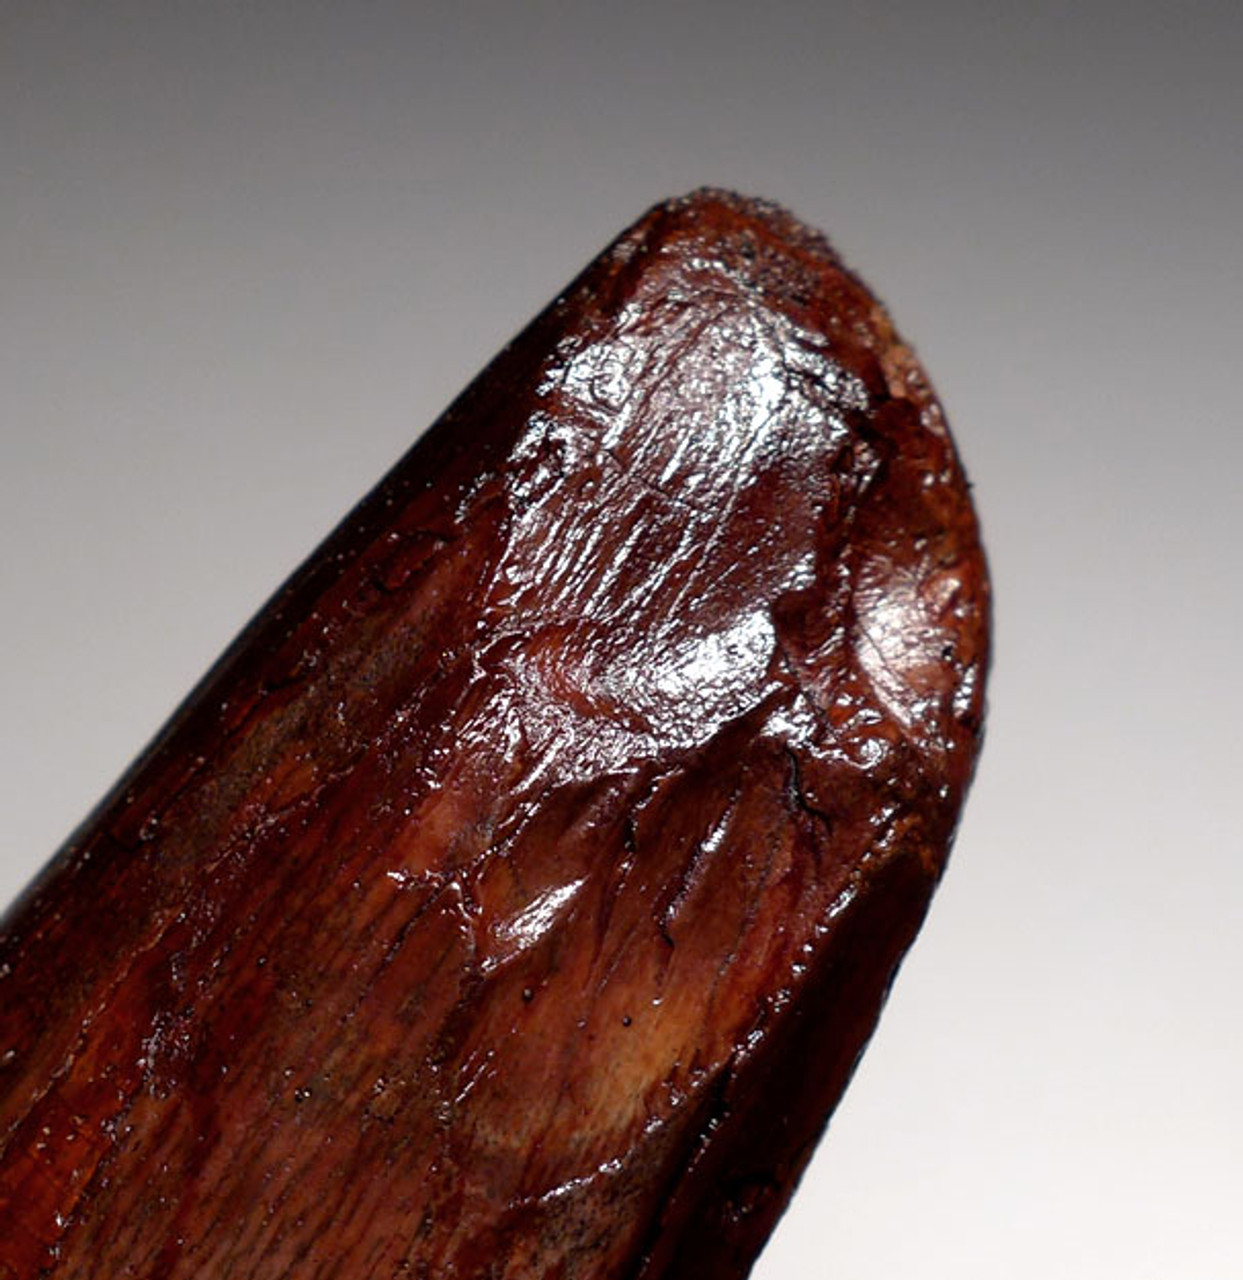 DT5-255 - 3 INCH UNBROKEN SPINOSAURUS DINOSAUR TOOTH WITH WINE RED ENAMEL